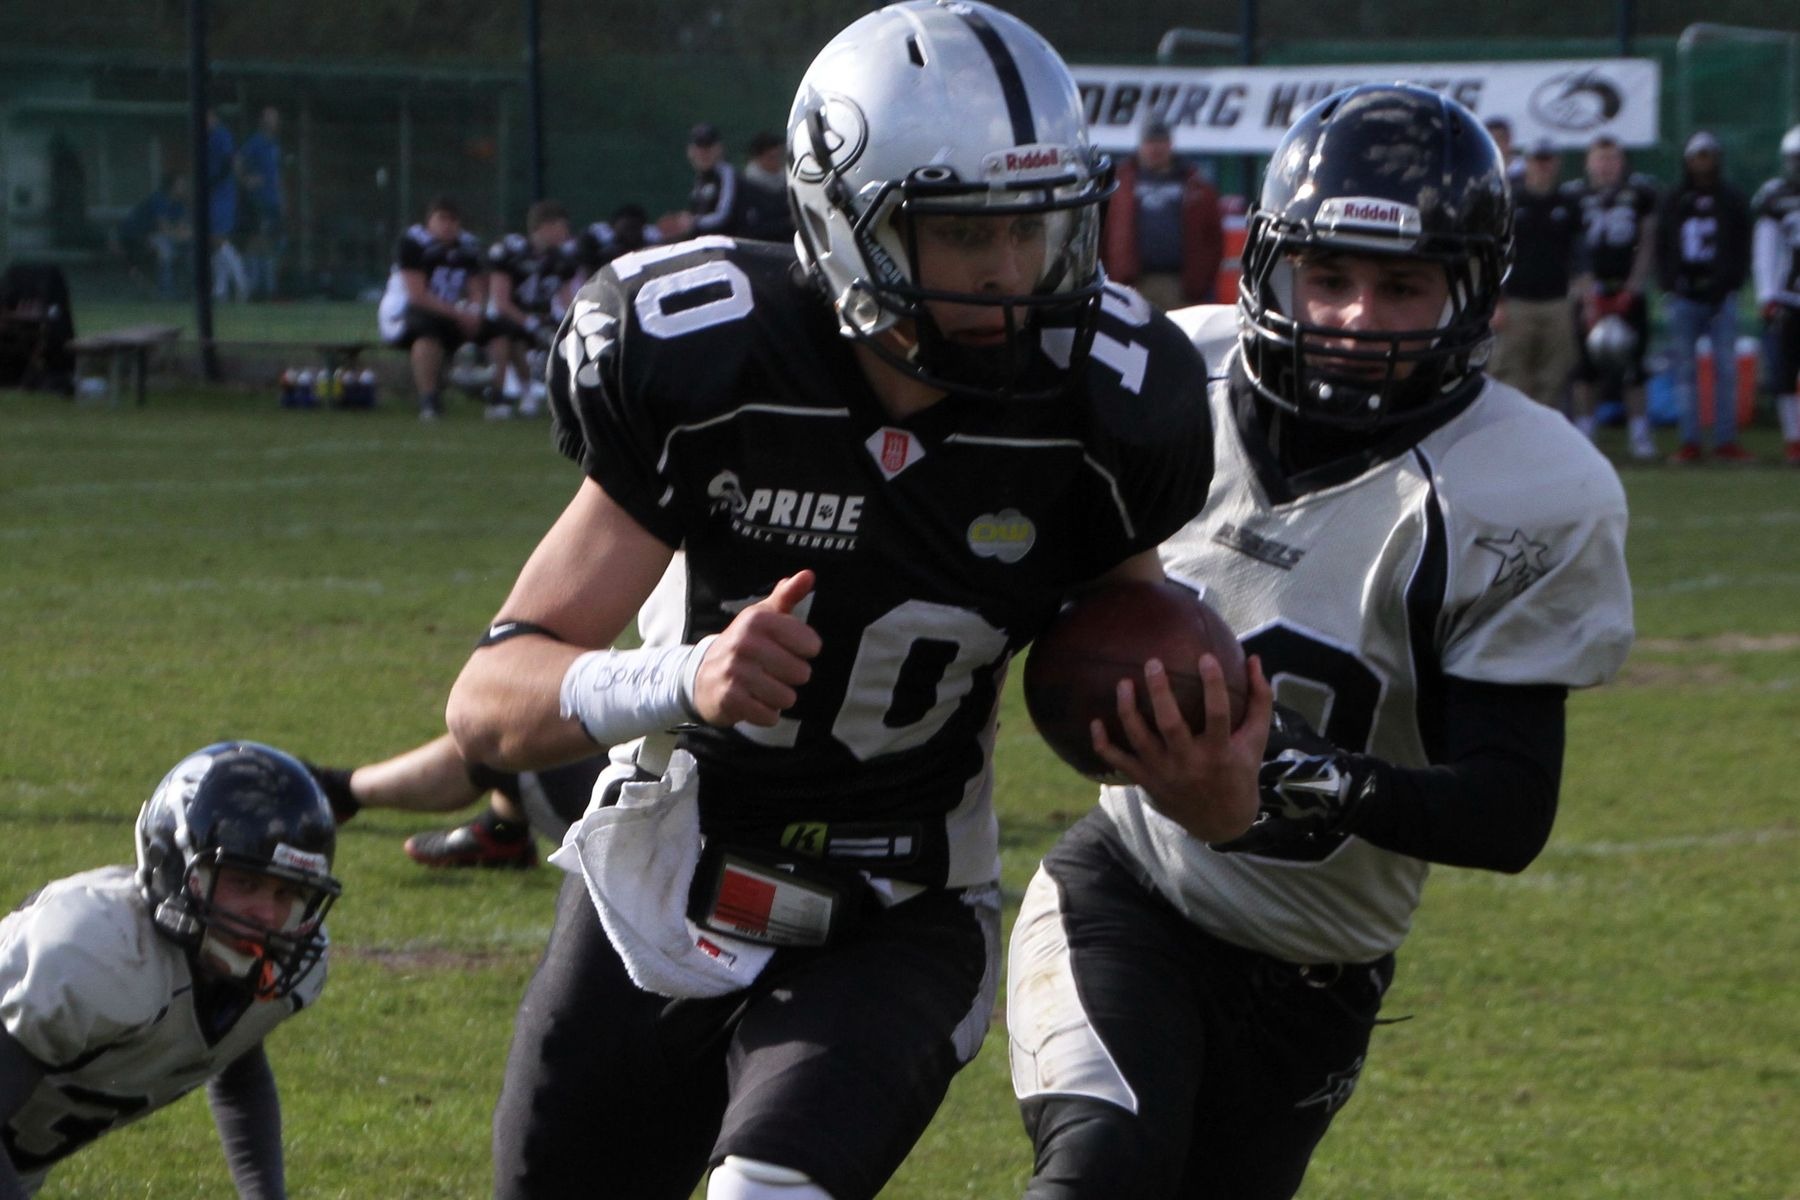 Hamburg Young Huskies vs. Berlin Rebels.